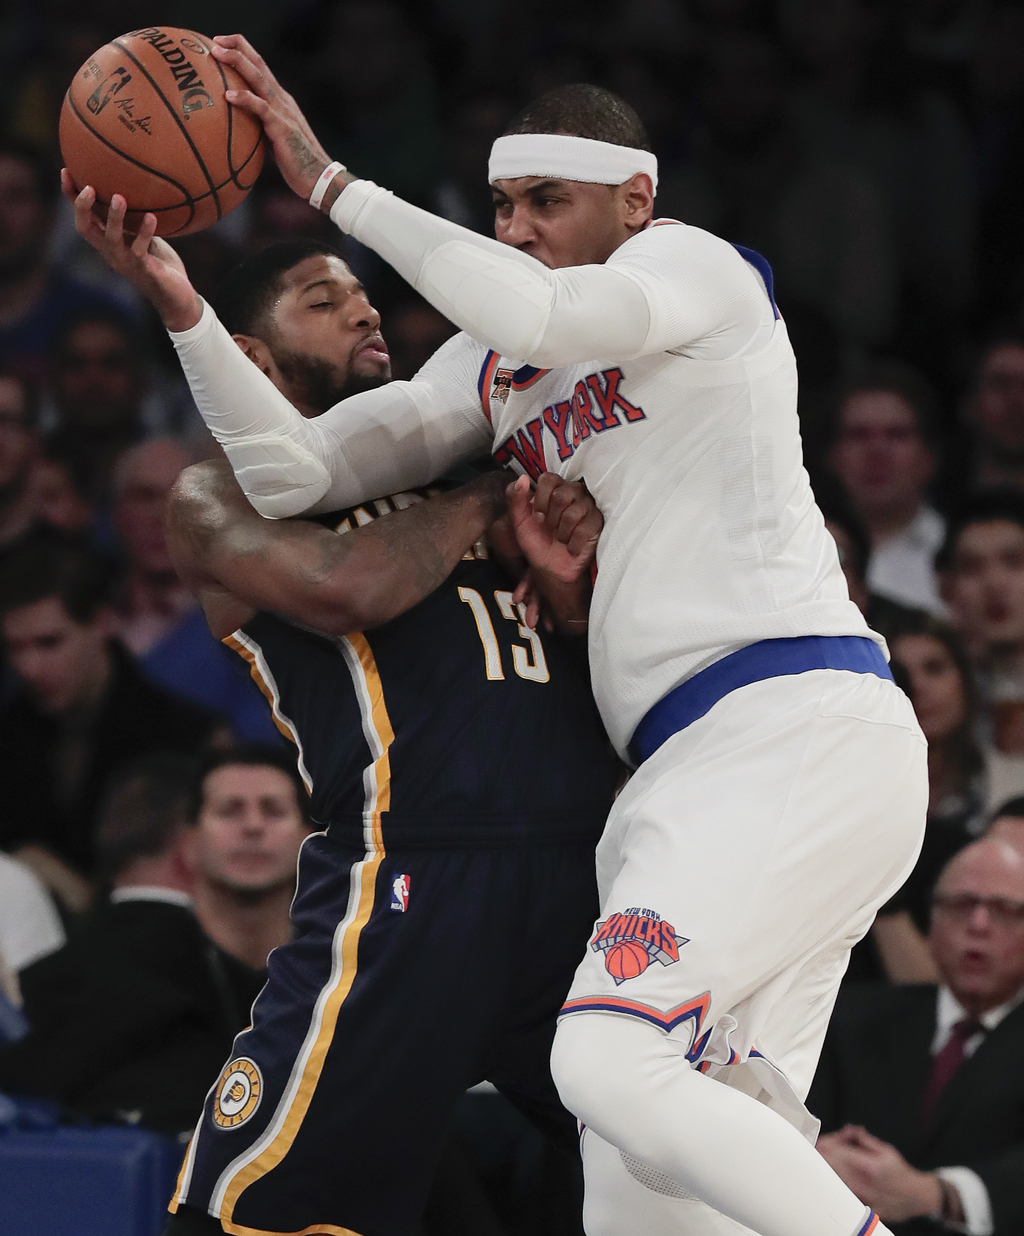 New York Knicks forward Carmelo Anthony drives against Indiana Pacers forward Paul George (13) during the first quarter of an NBA baske...